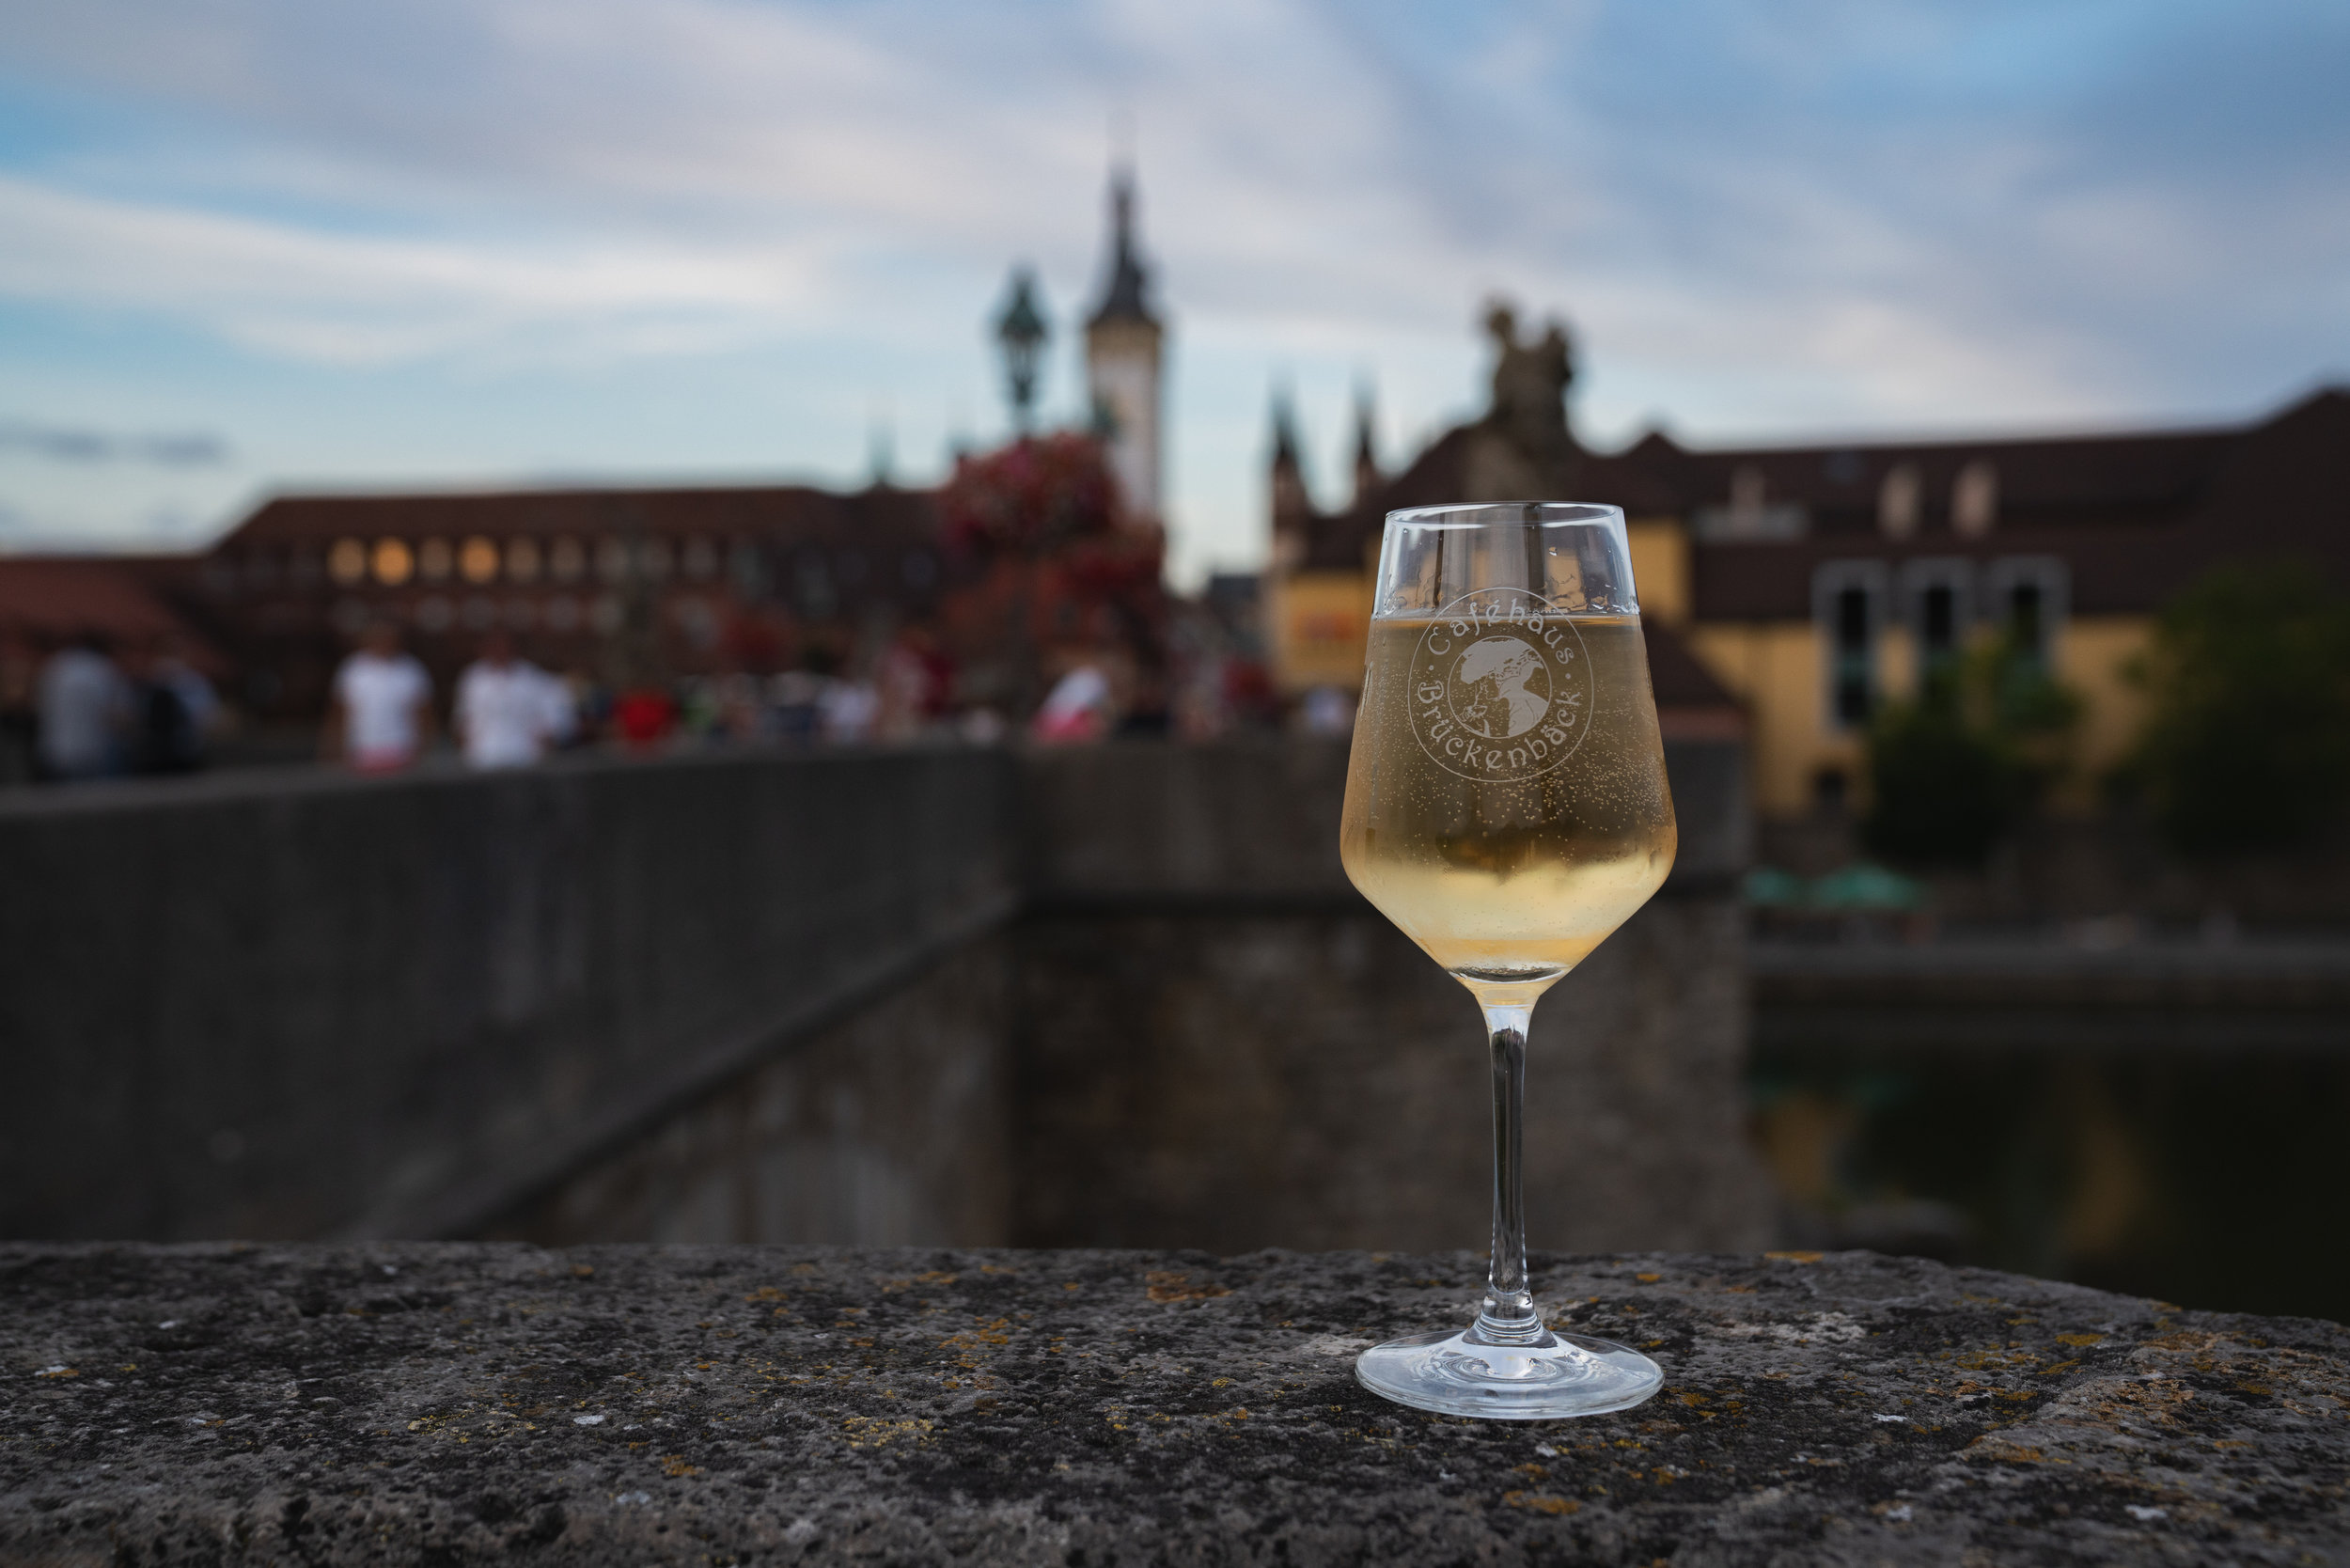 Old Main Bridge - Grab a glass of Franconian wine and hang out with the locals on the Old Main Bridge!